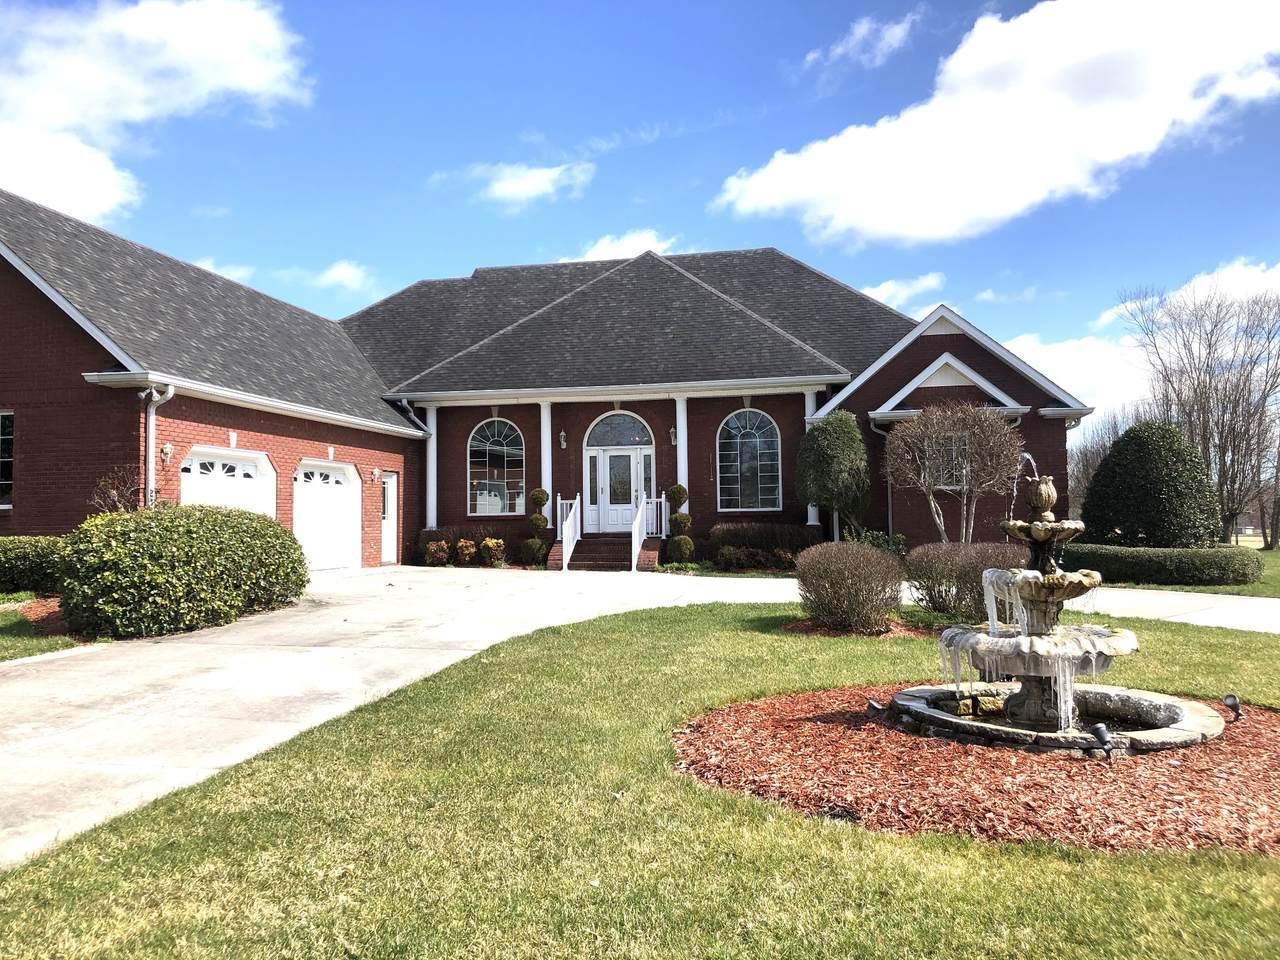 300 Willow Brook Dr - Photo 1